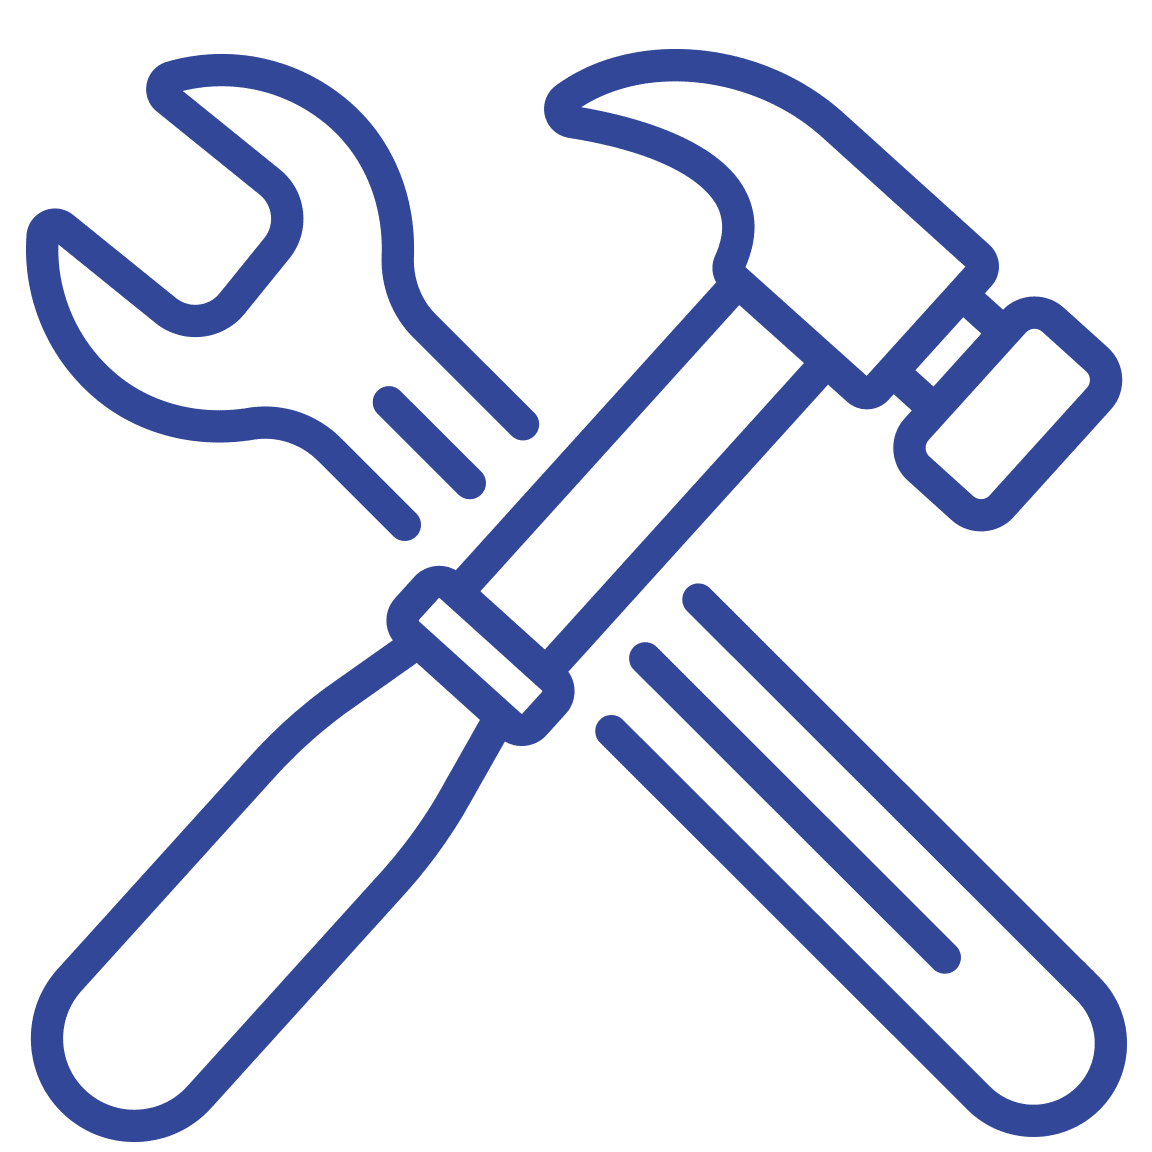 Fence replacement & repair icon